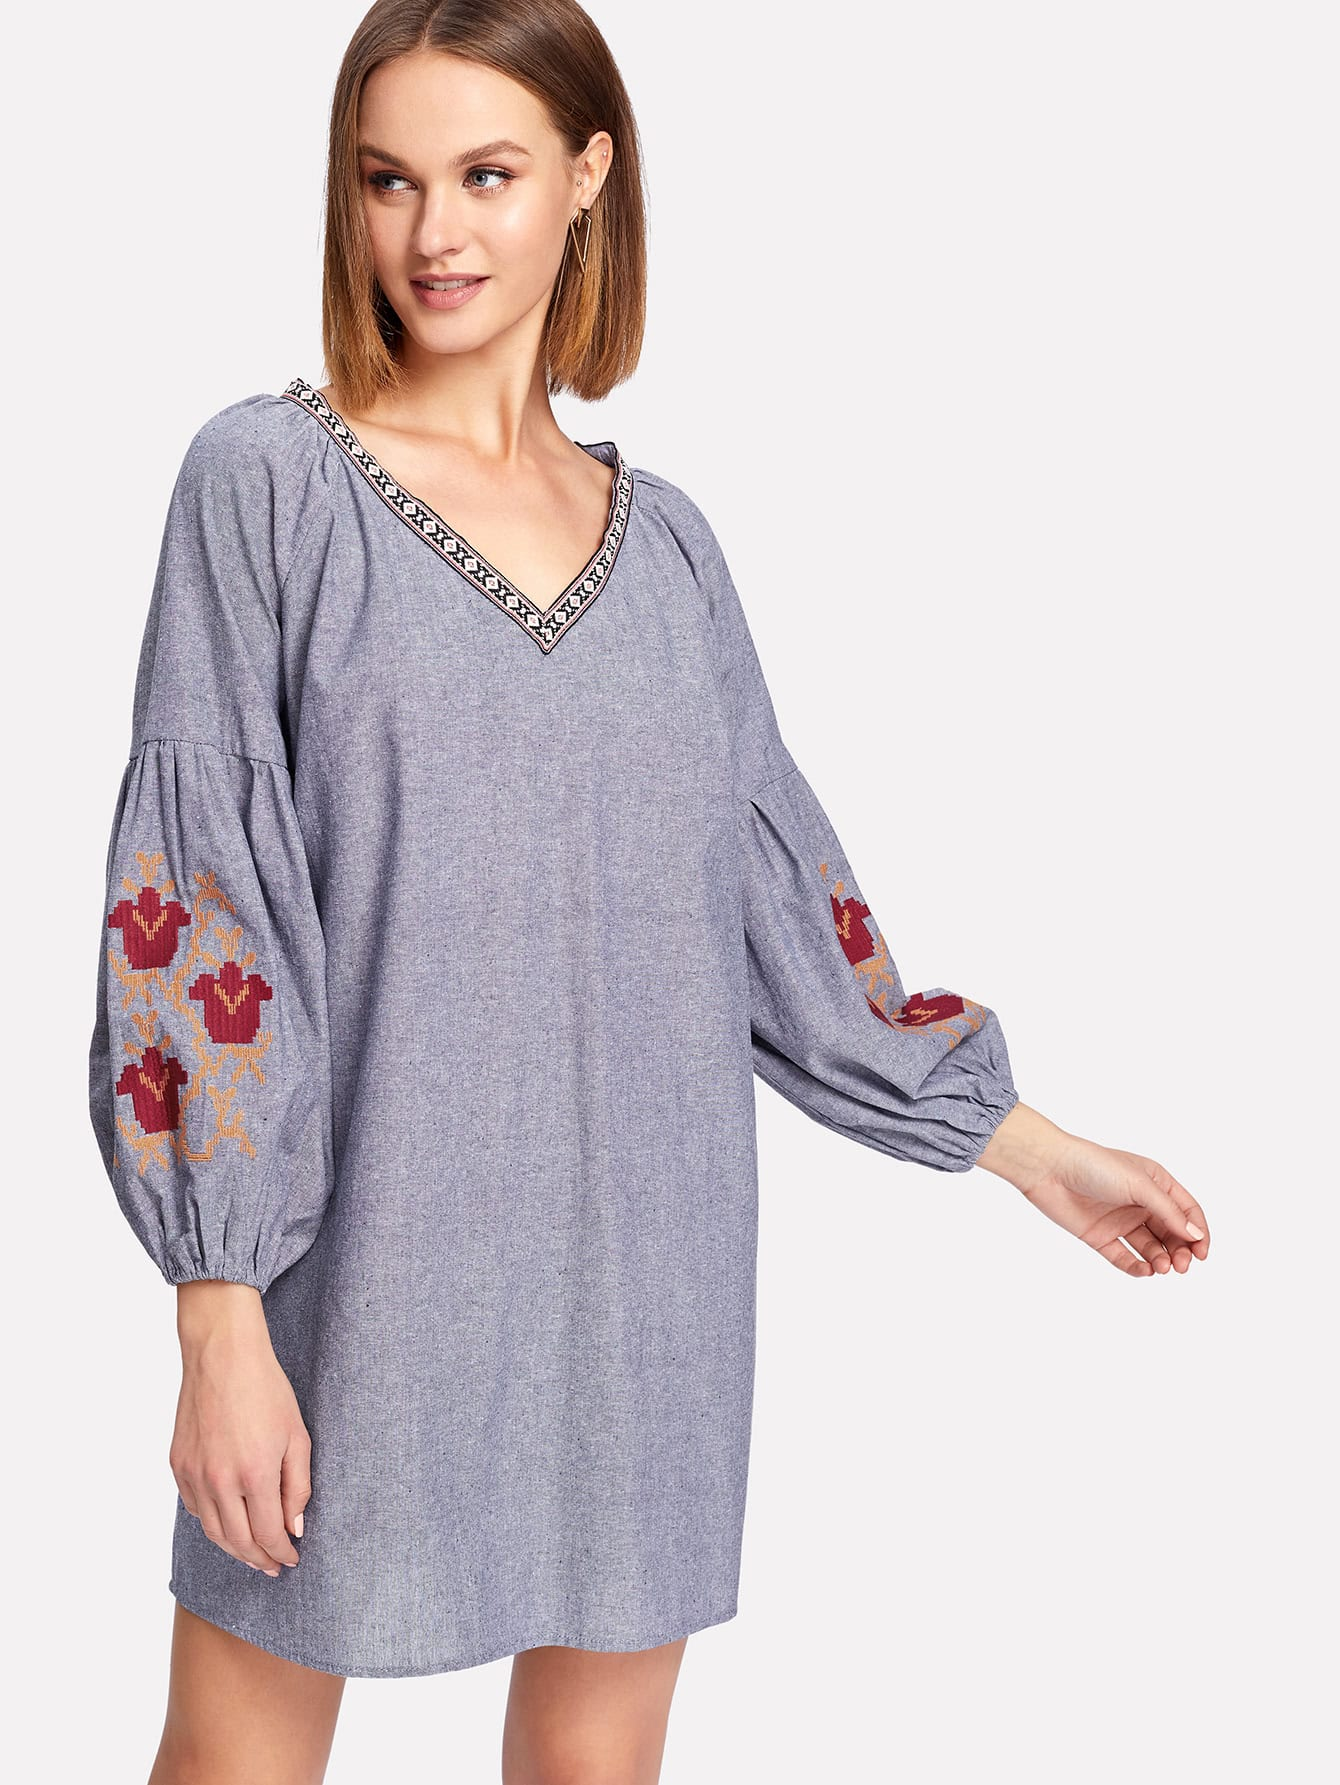 Embroidery Bishop Sleeve Tunic Dress boxed pleated bishop sleeve tunic top